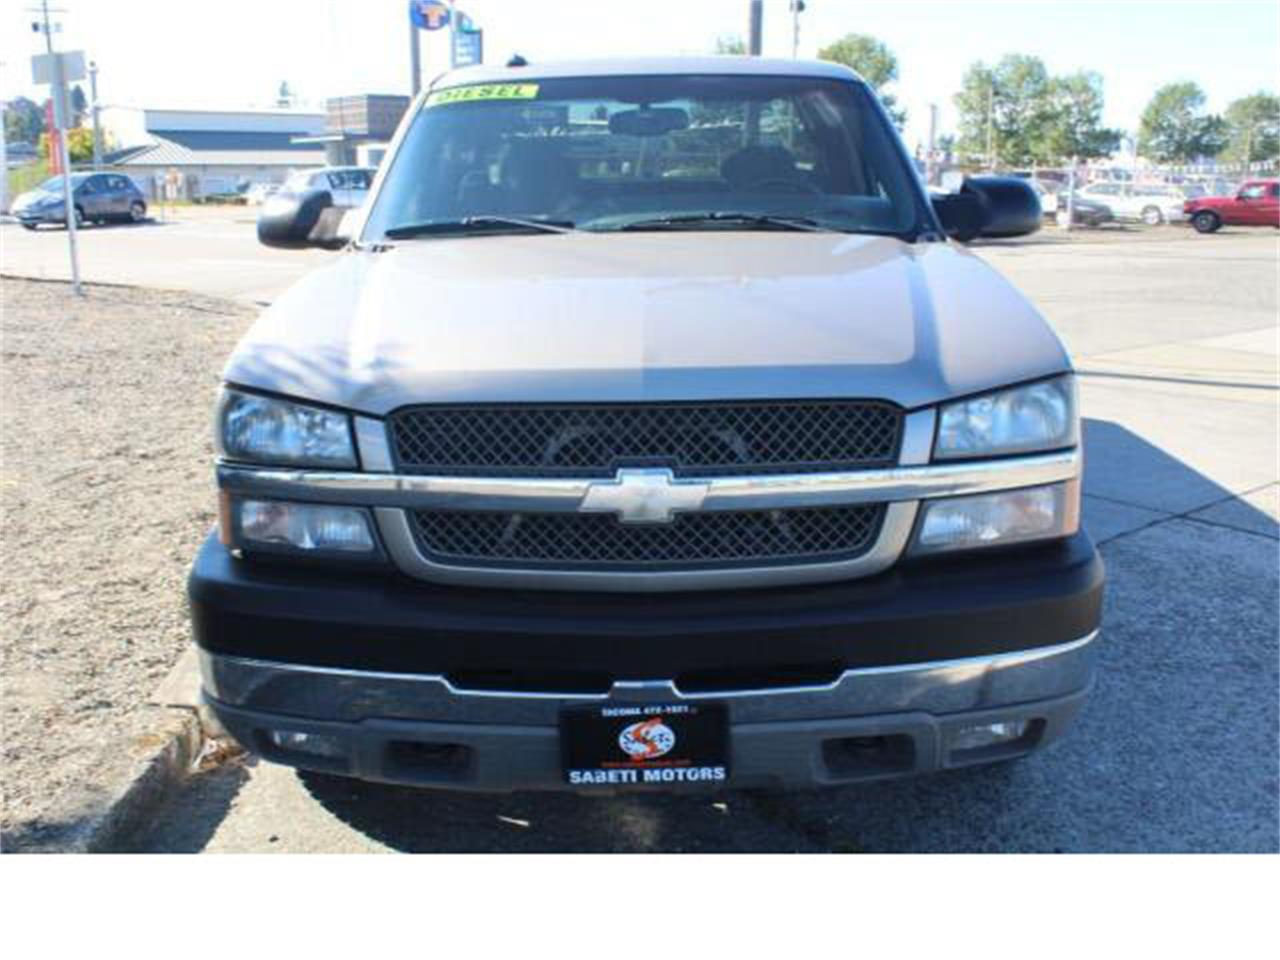 Large Picture of 2003 Chevrolet Silverado located in Washington - $11,990.00 Offered by Sabeti Motors - M5R3